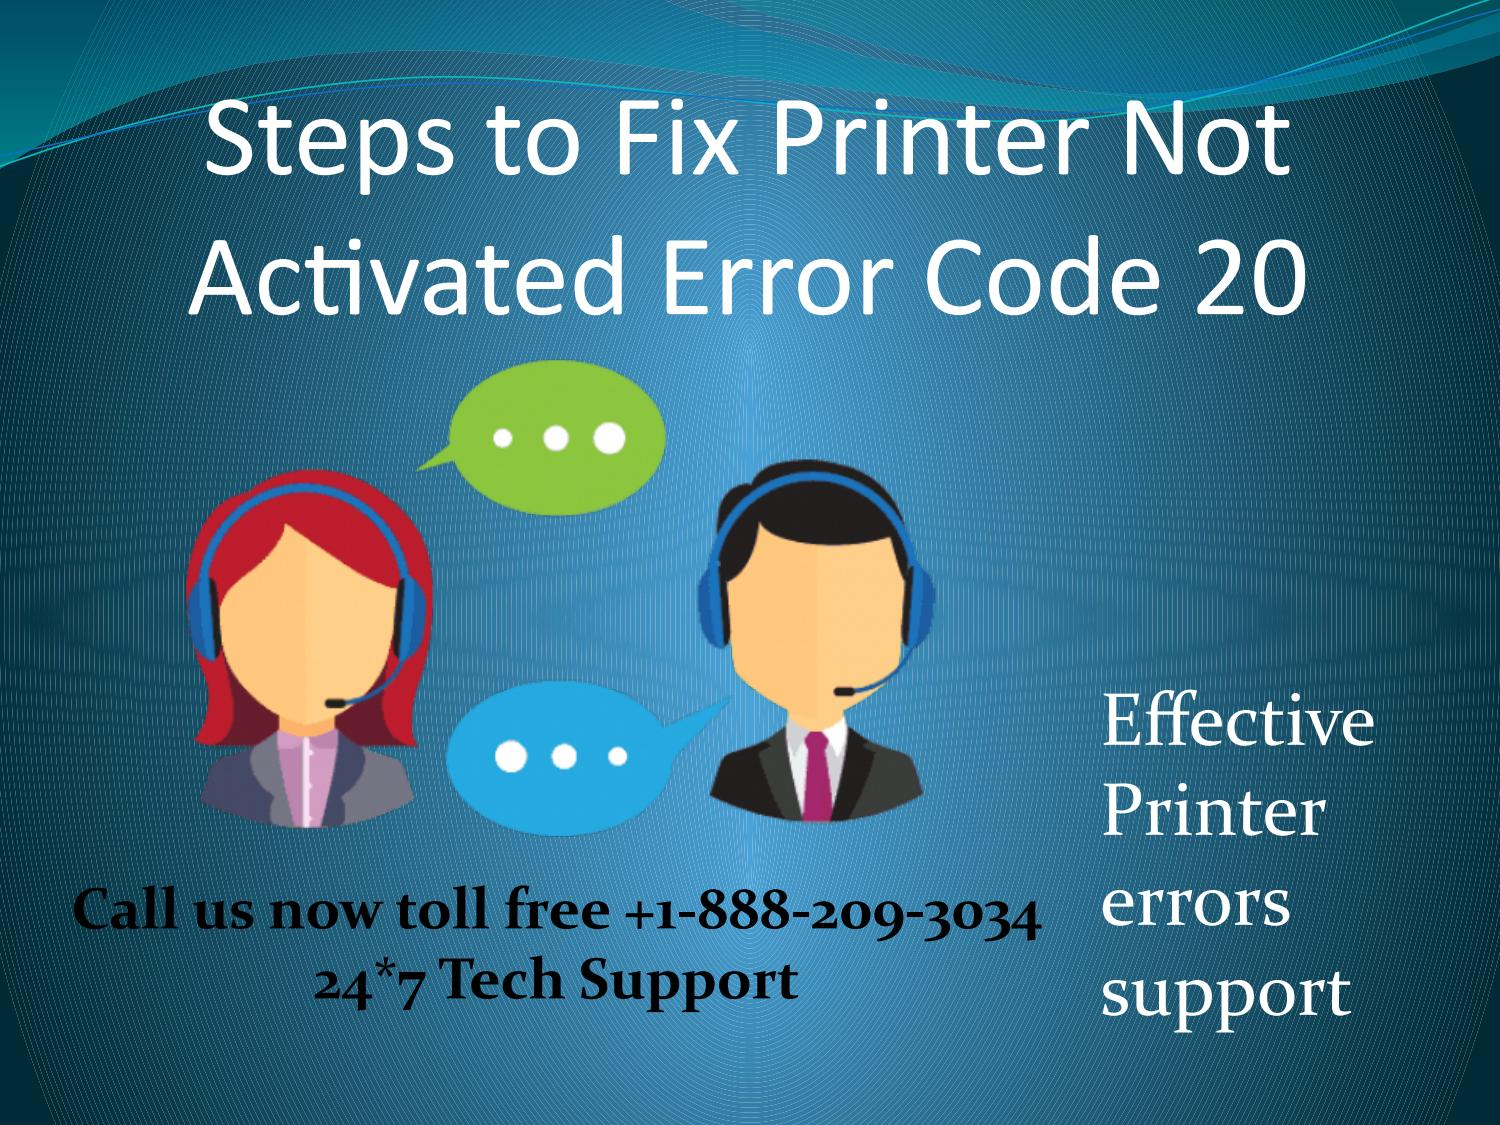 Steps to Fix Printer Not Activated Error Code 20 by Roger